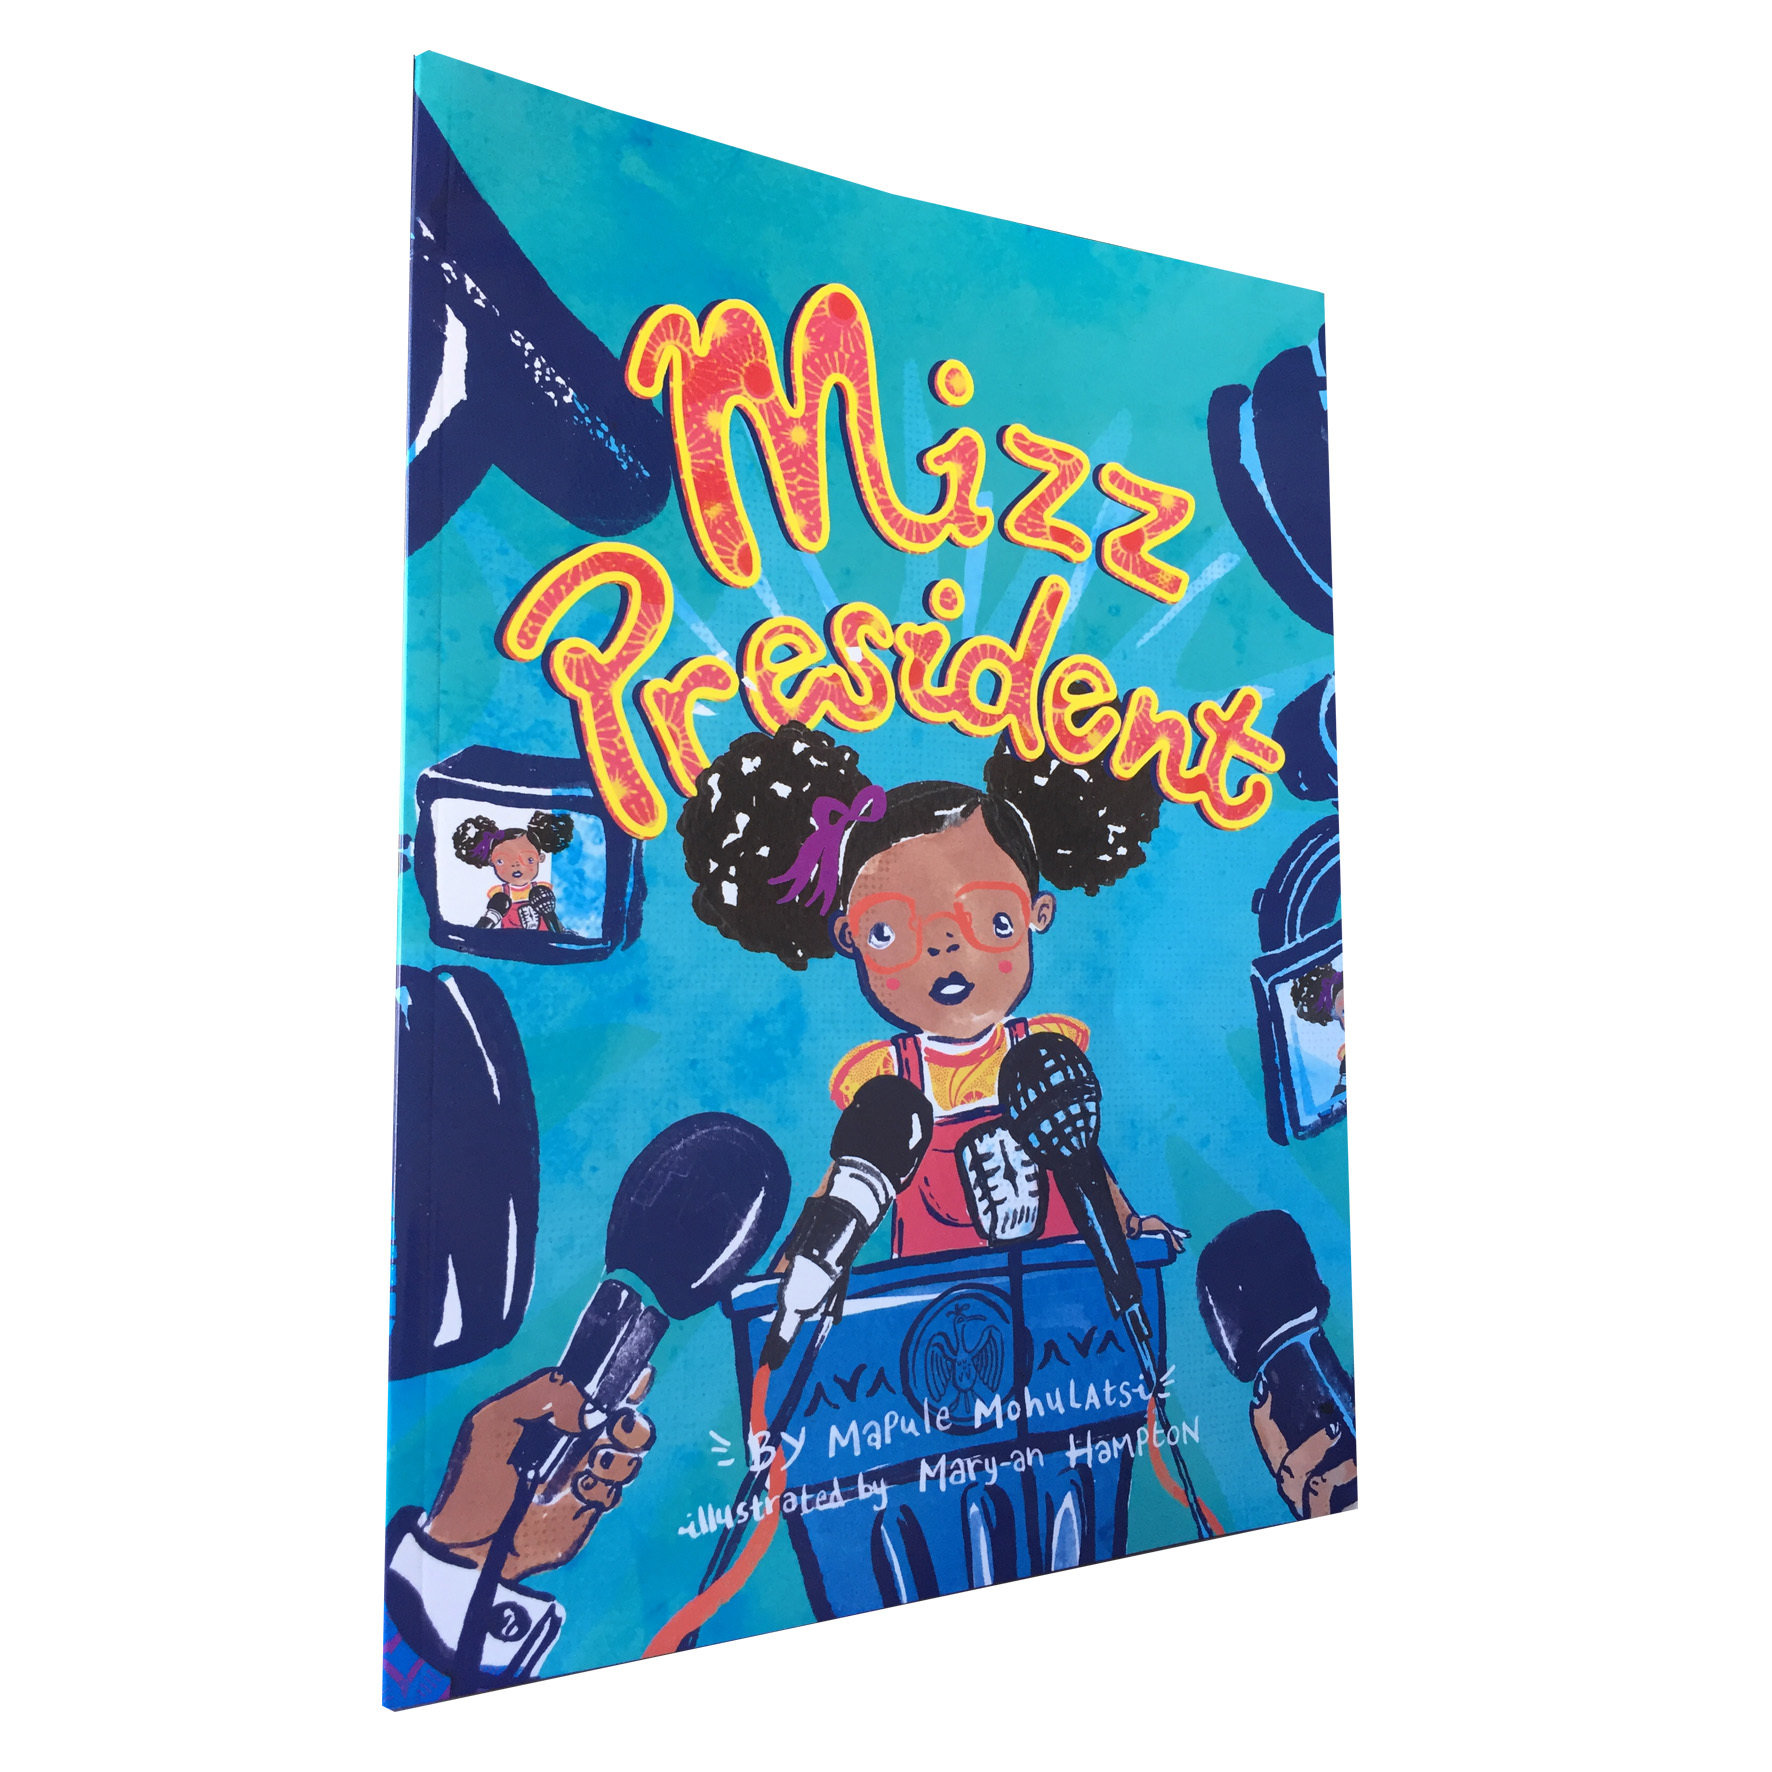 Mizz President by Mapule Mohulatsie (Every Child Books, 2018) EC01